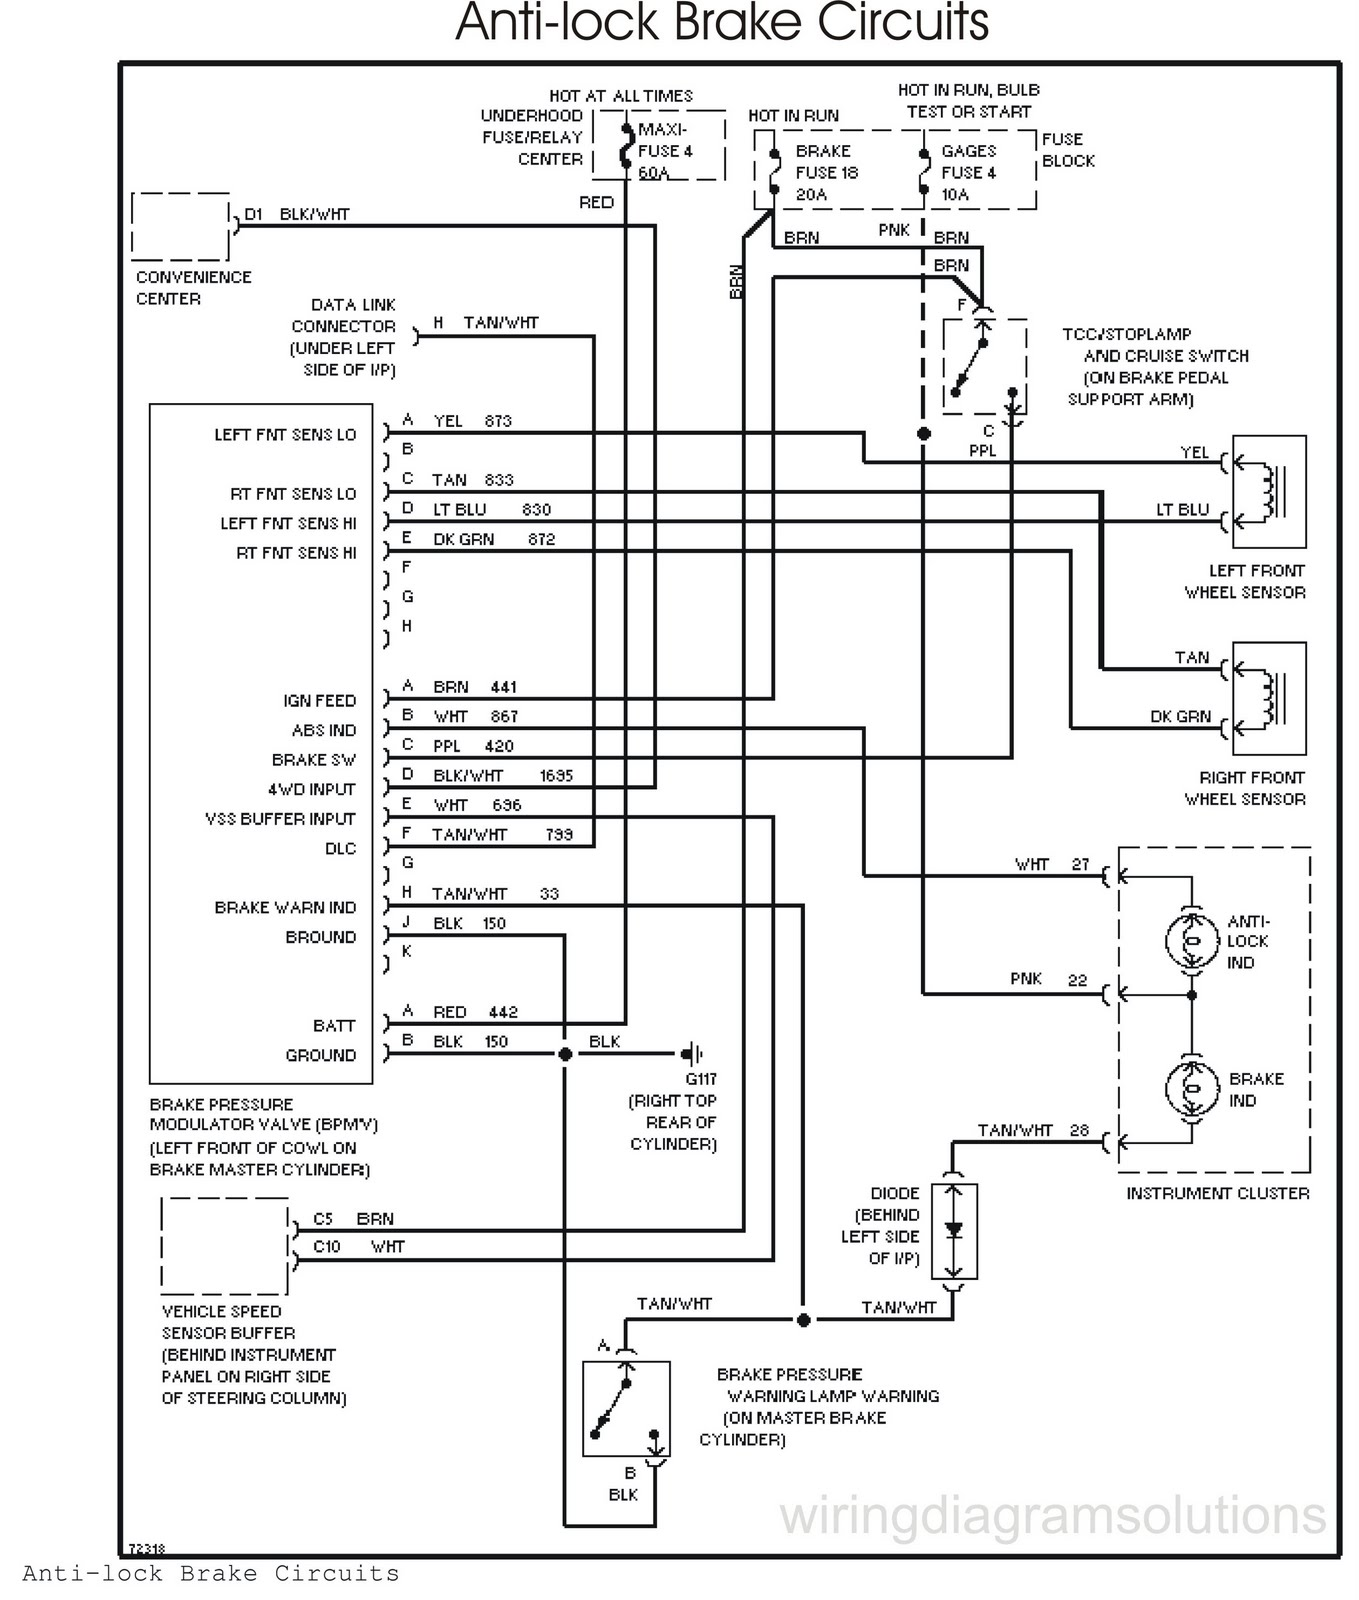 1998 Chevy Tahoe Brake Switch Wiring Diagram Library 96 Ac And Heater The 1995 Chevrolet Schematic Anti Lock